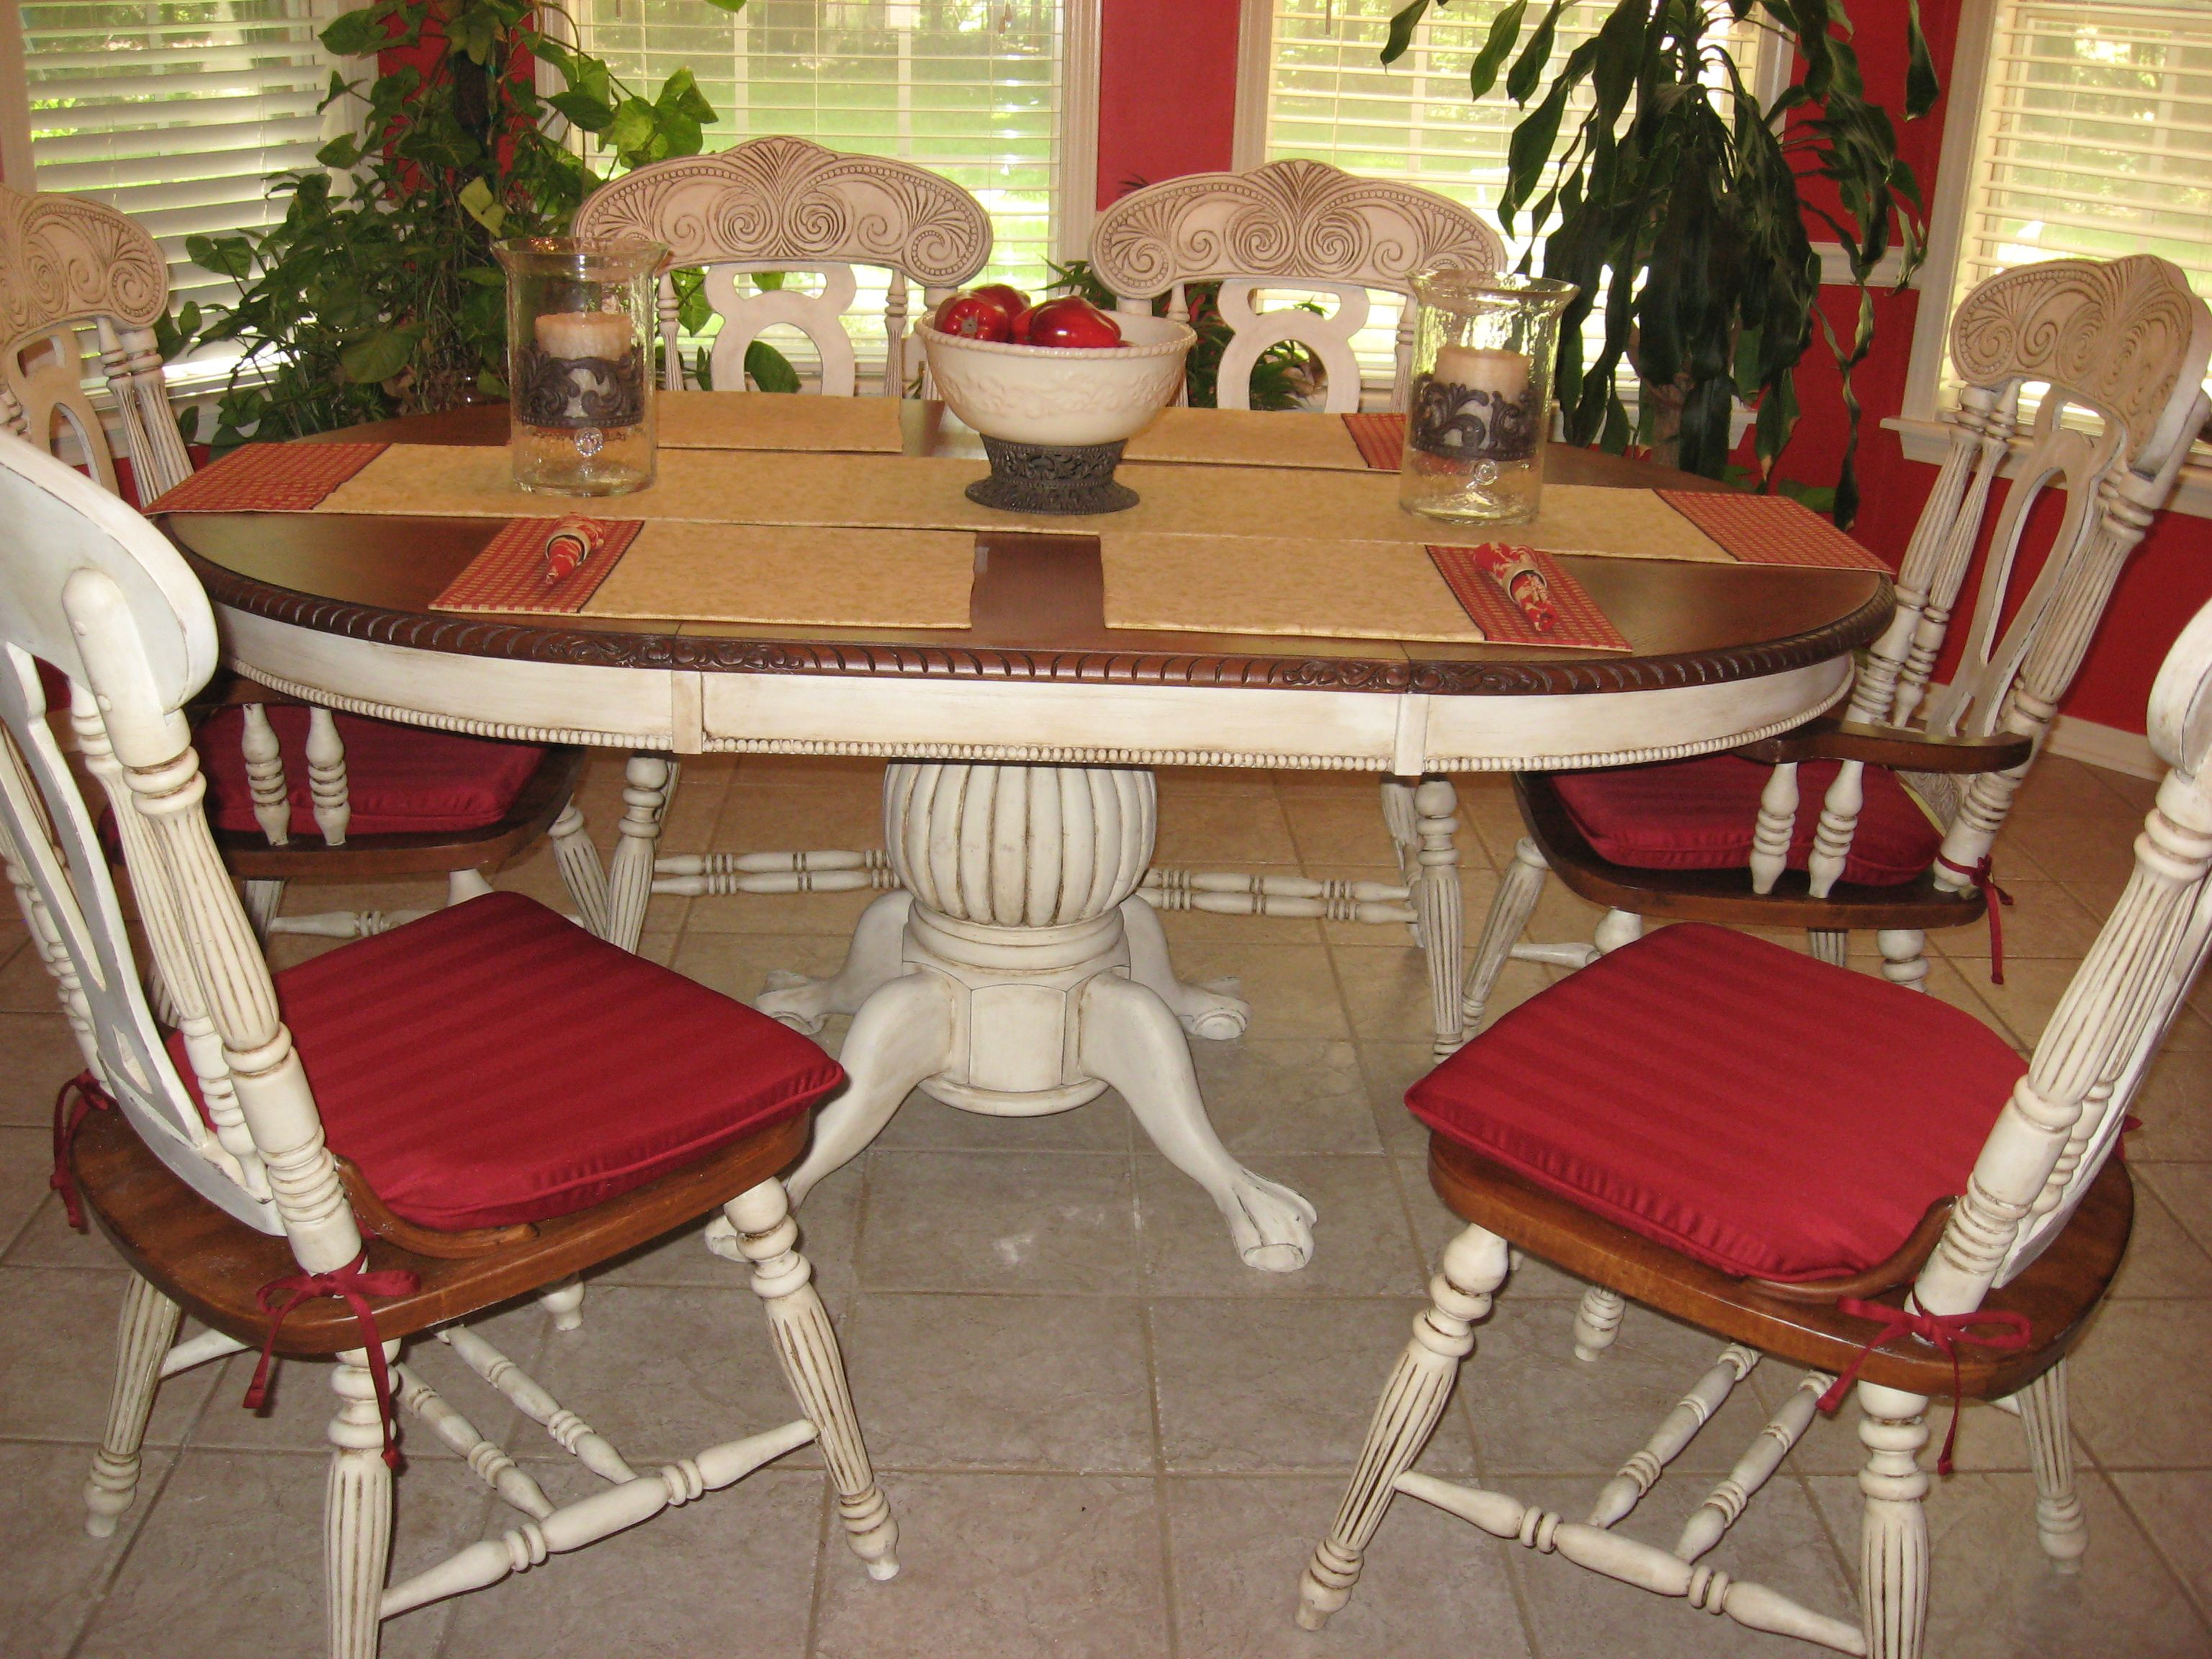 Distressed My Dining Room Table And Chairs With Annie Sloan Pure Glamorous Kitchen Tables And Chairs Decorating Design